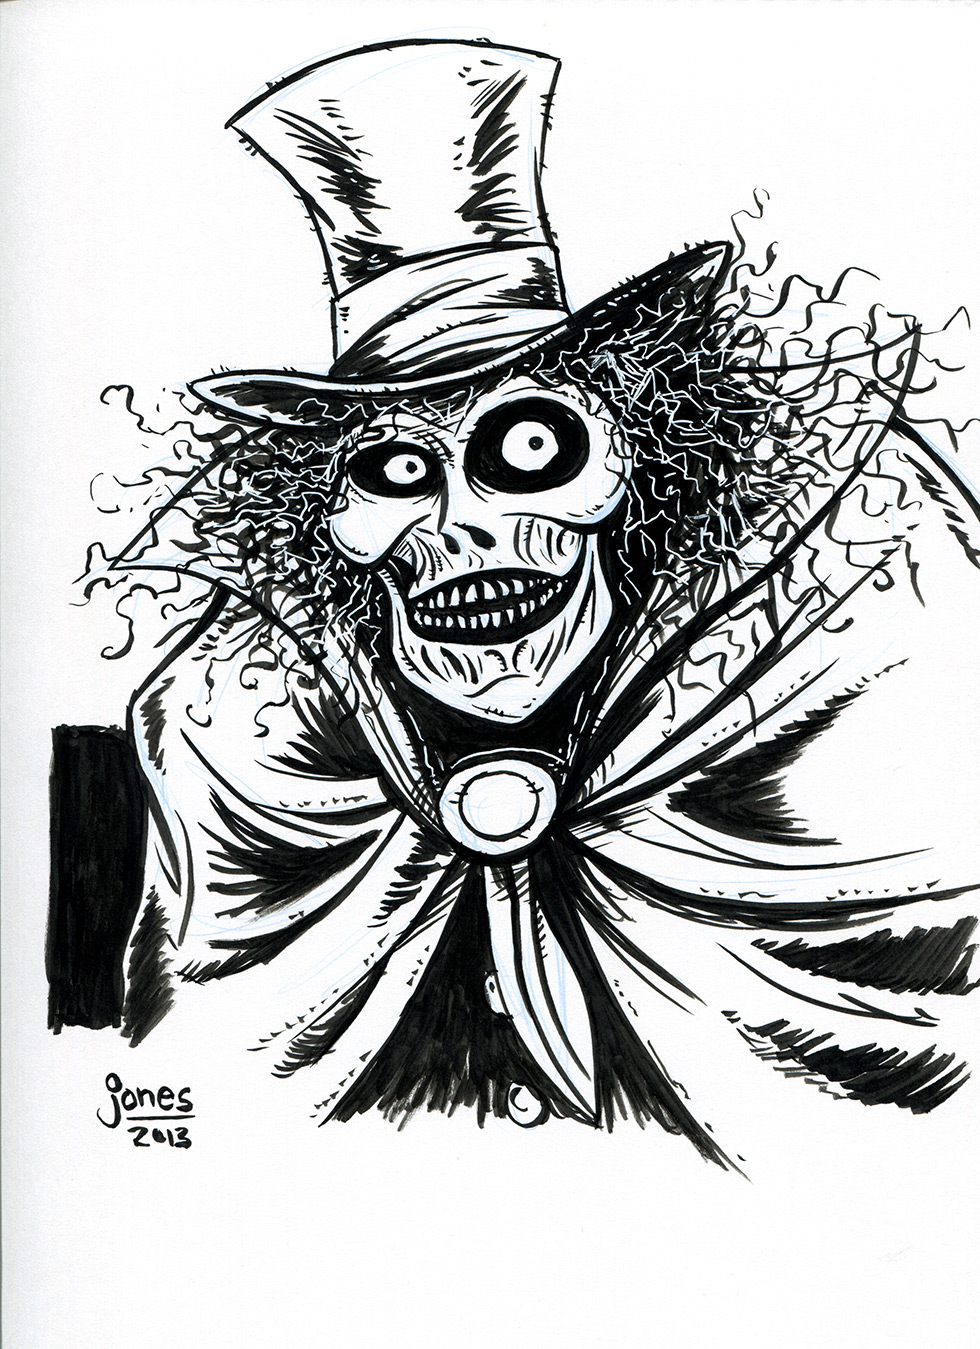 The hatbox ghost from Disney's Haunted Mansion